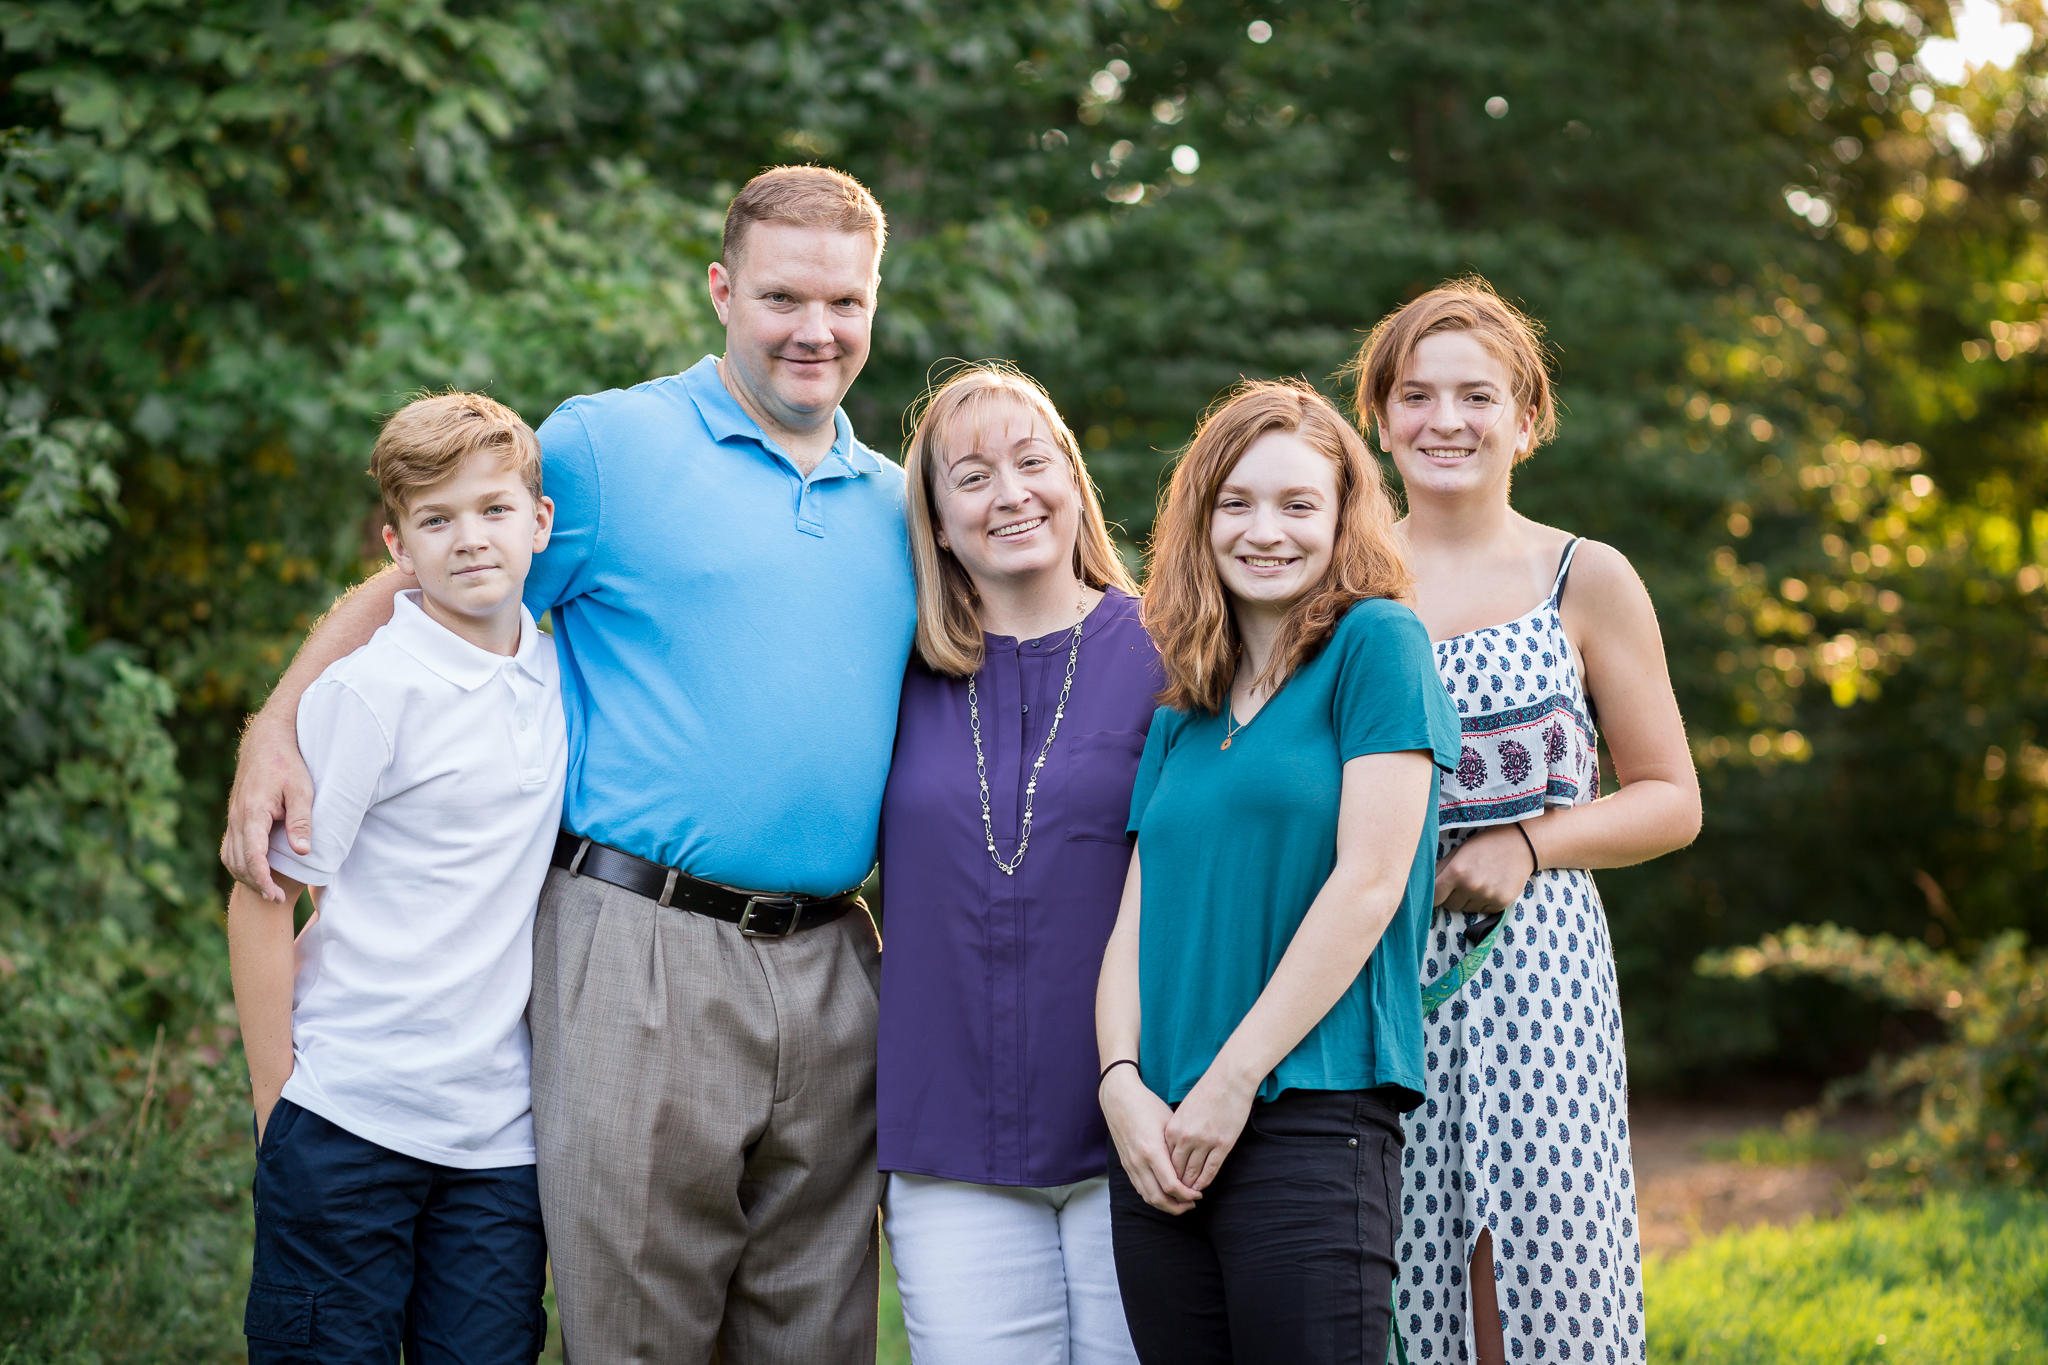 Richmond Virginia Family Photography Session in Midlothian